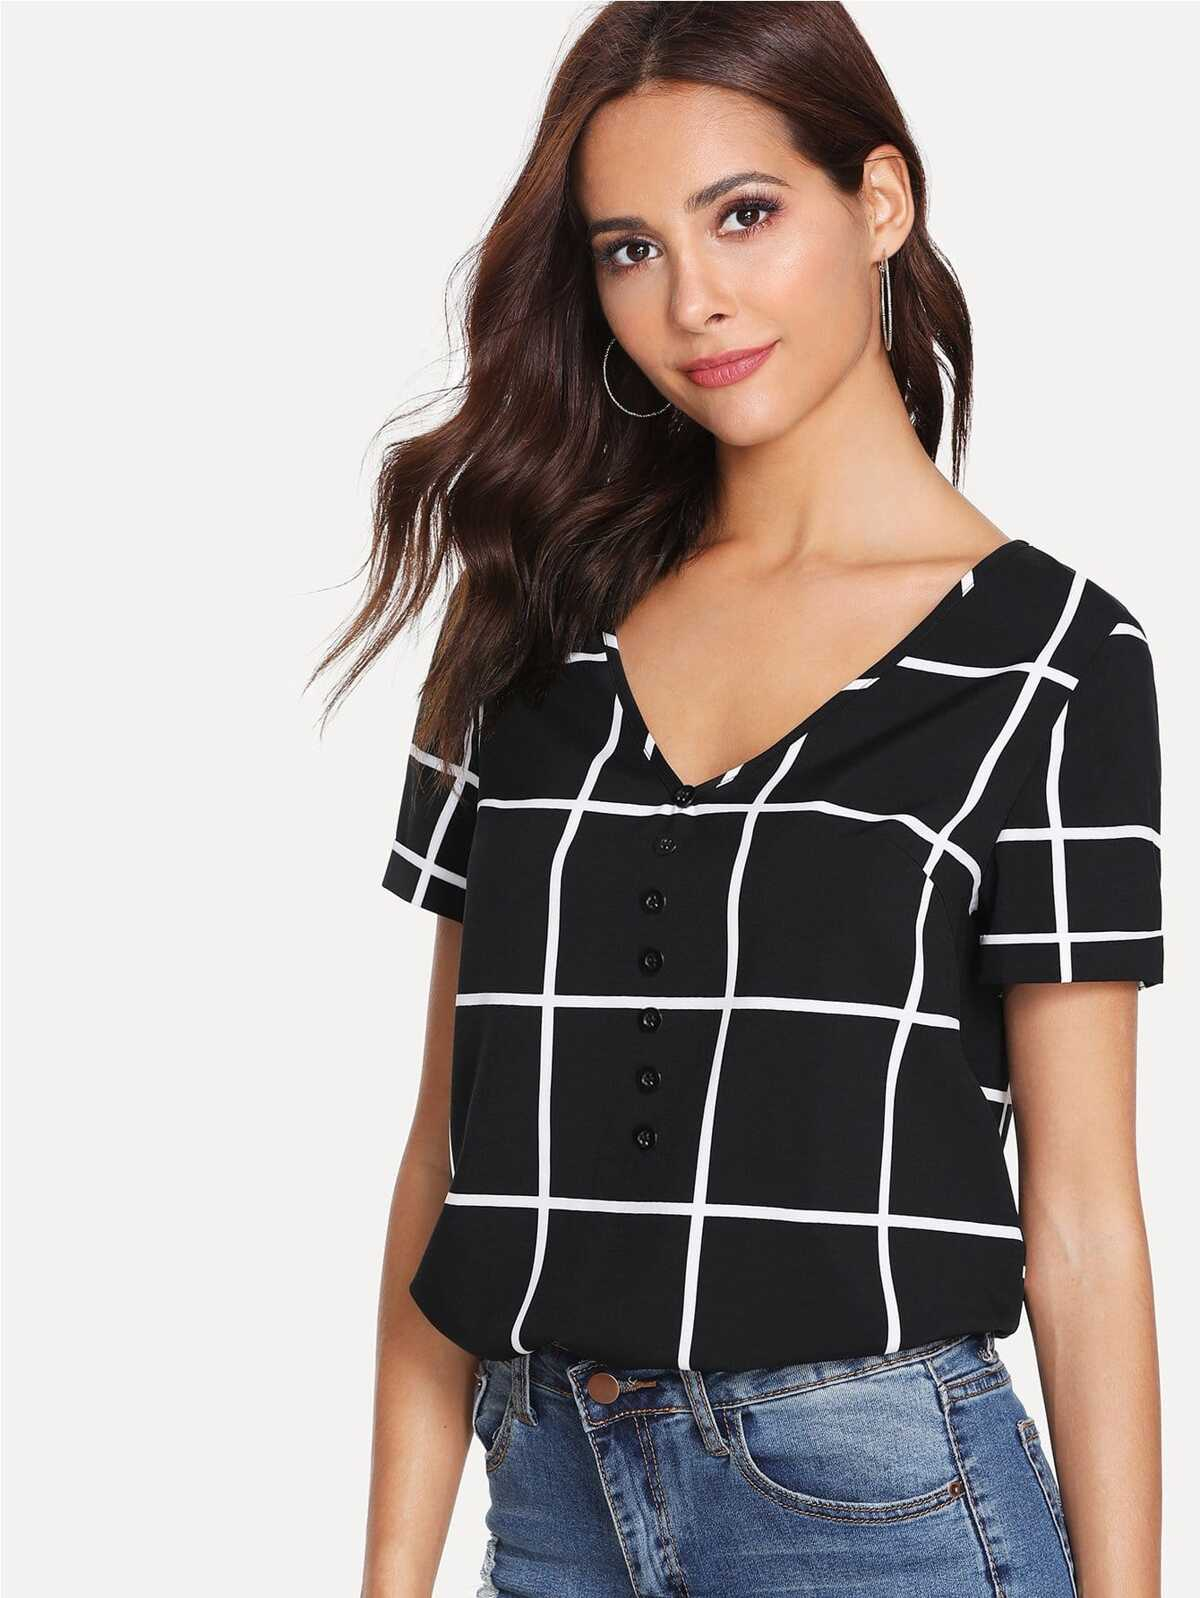 Buttoned V Neck Grid Top by Romwe